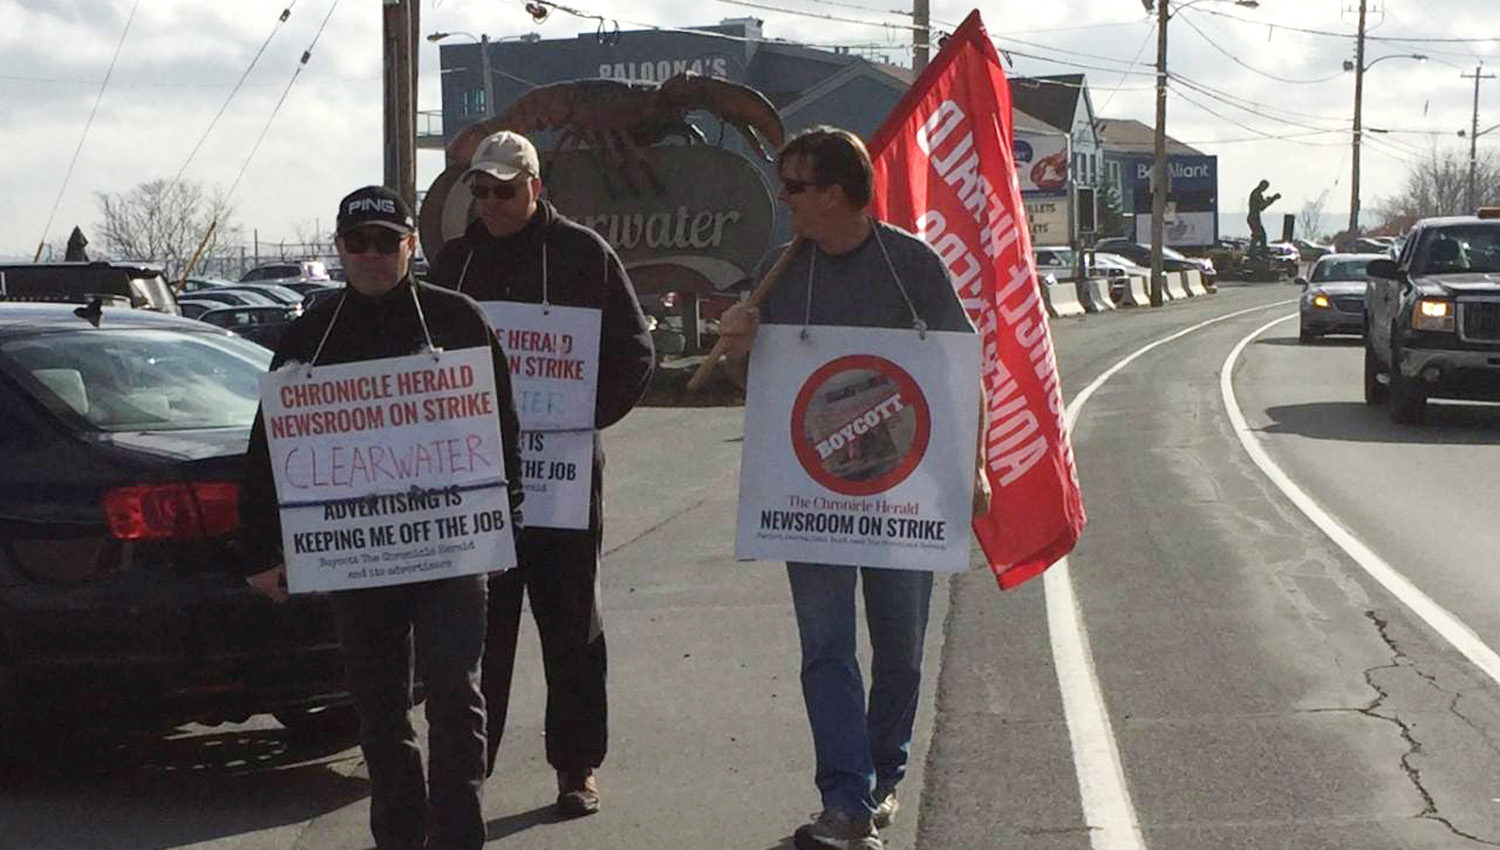 3 strikes from Chronicle Herald with signs and a flag